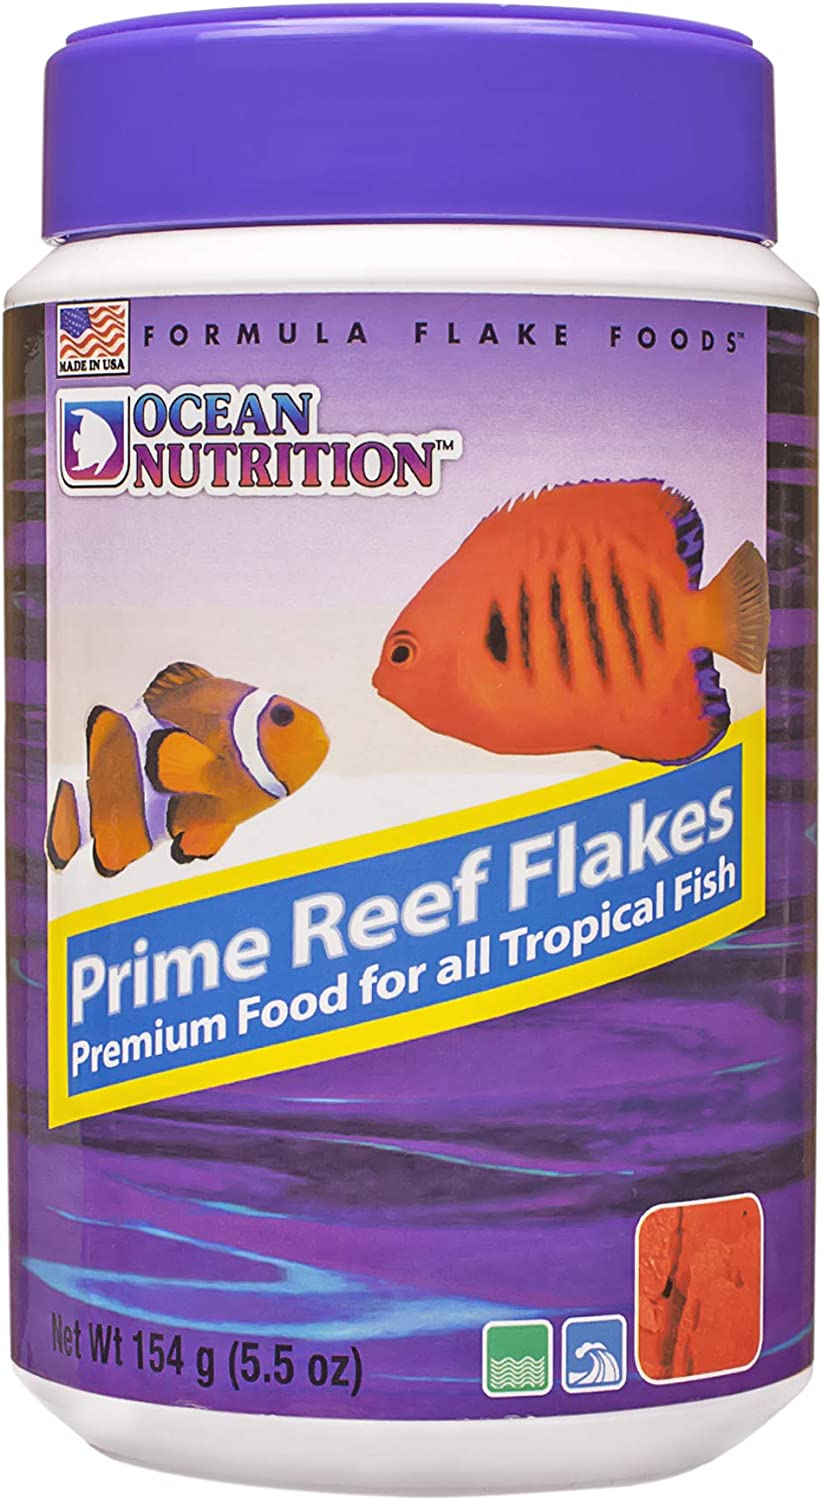 Ocean Nutrition Prime Reef Flakes 5.5-Ounces (154 Grams) Jar